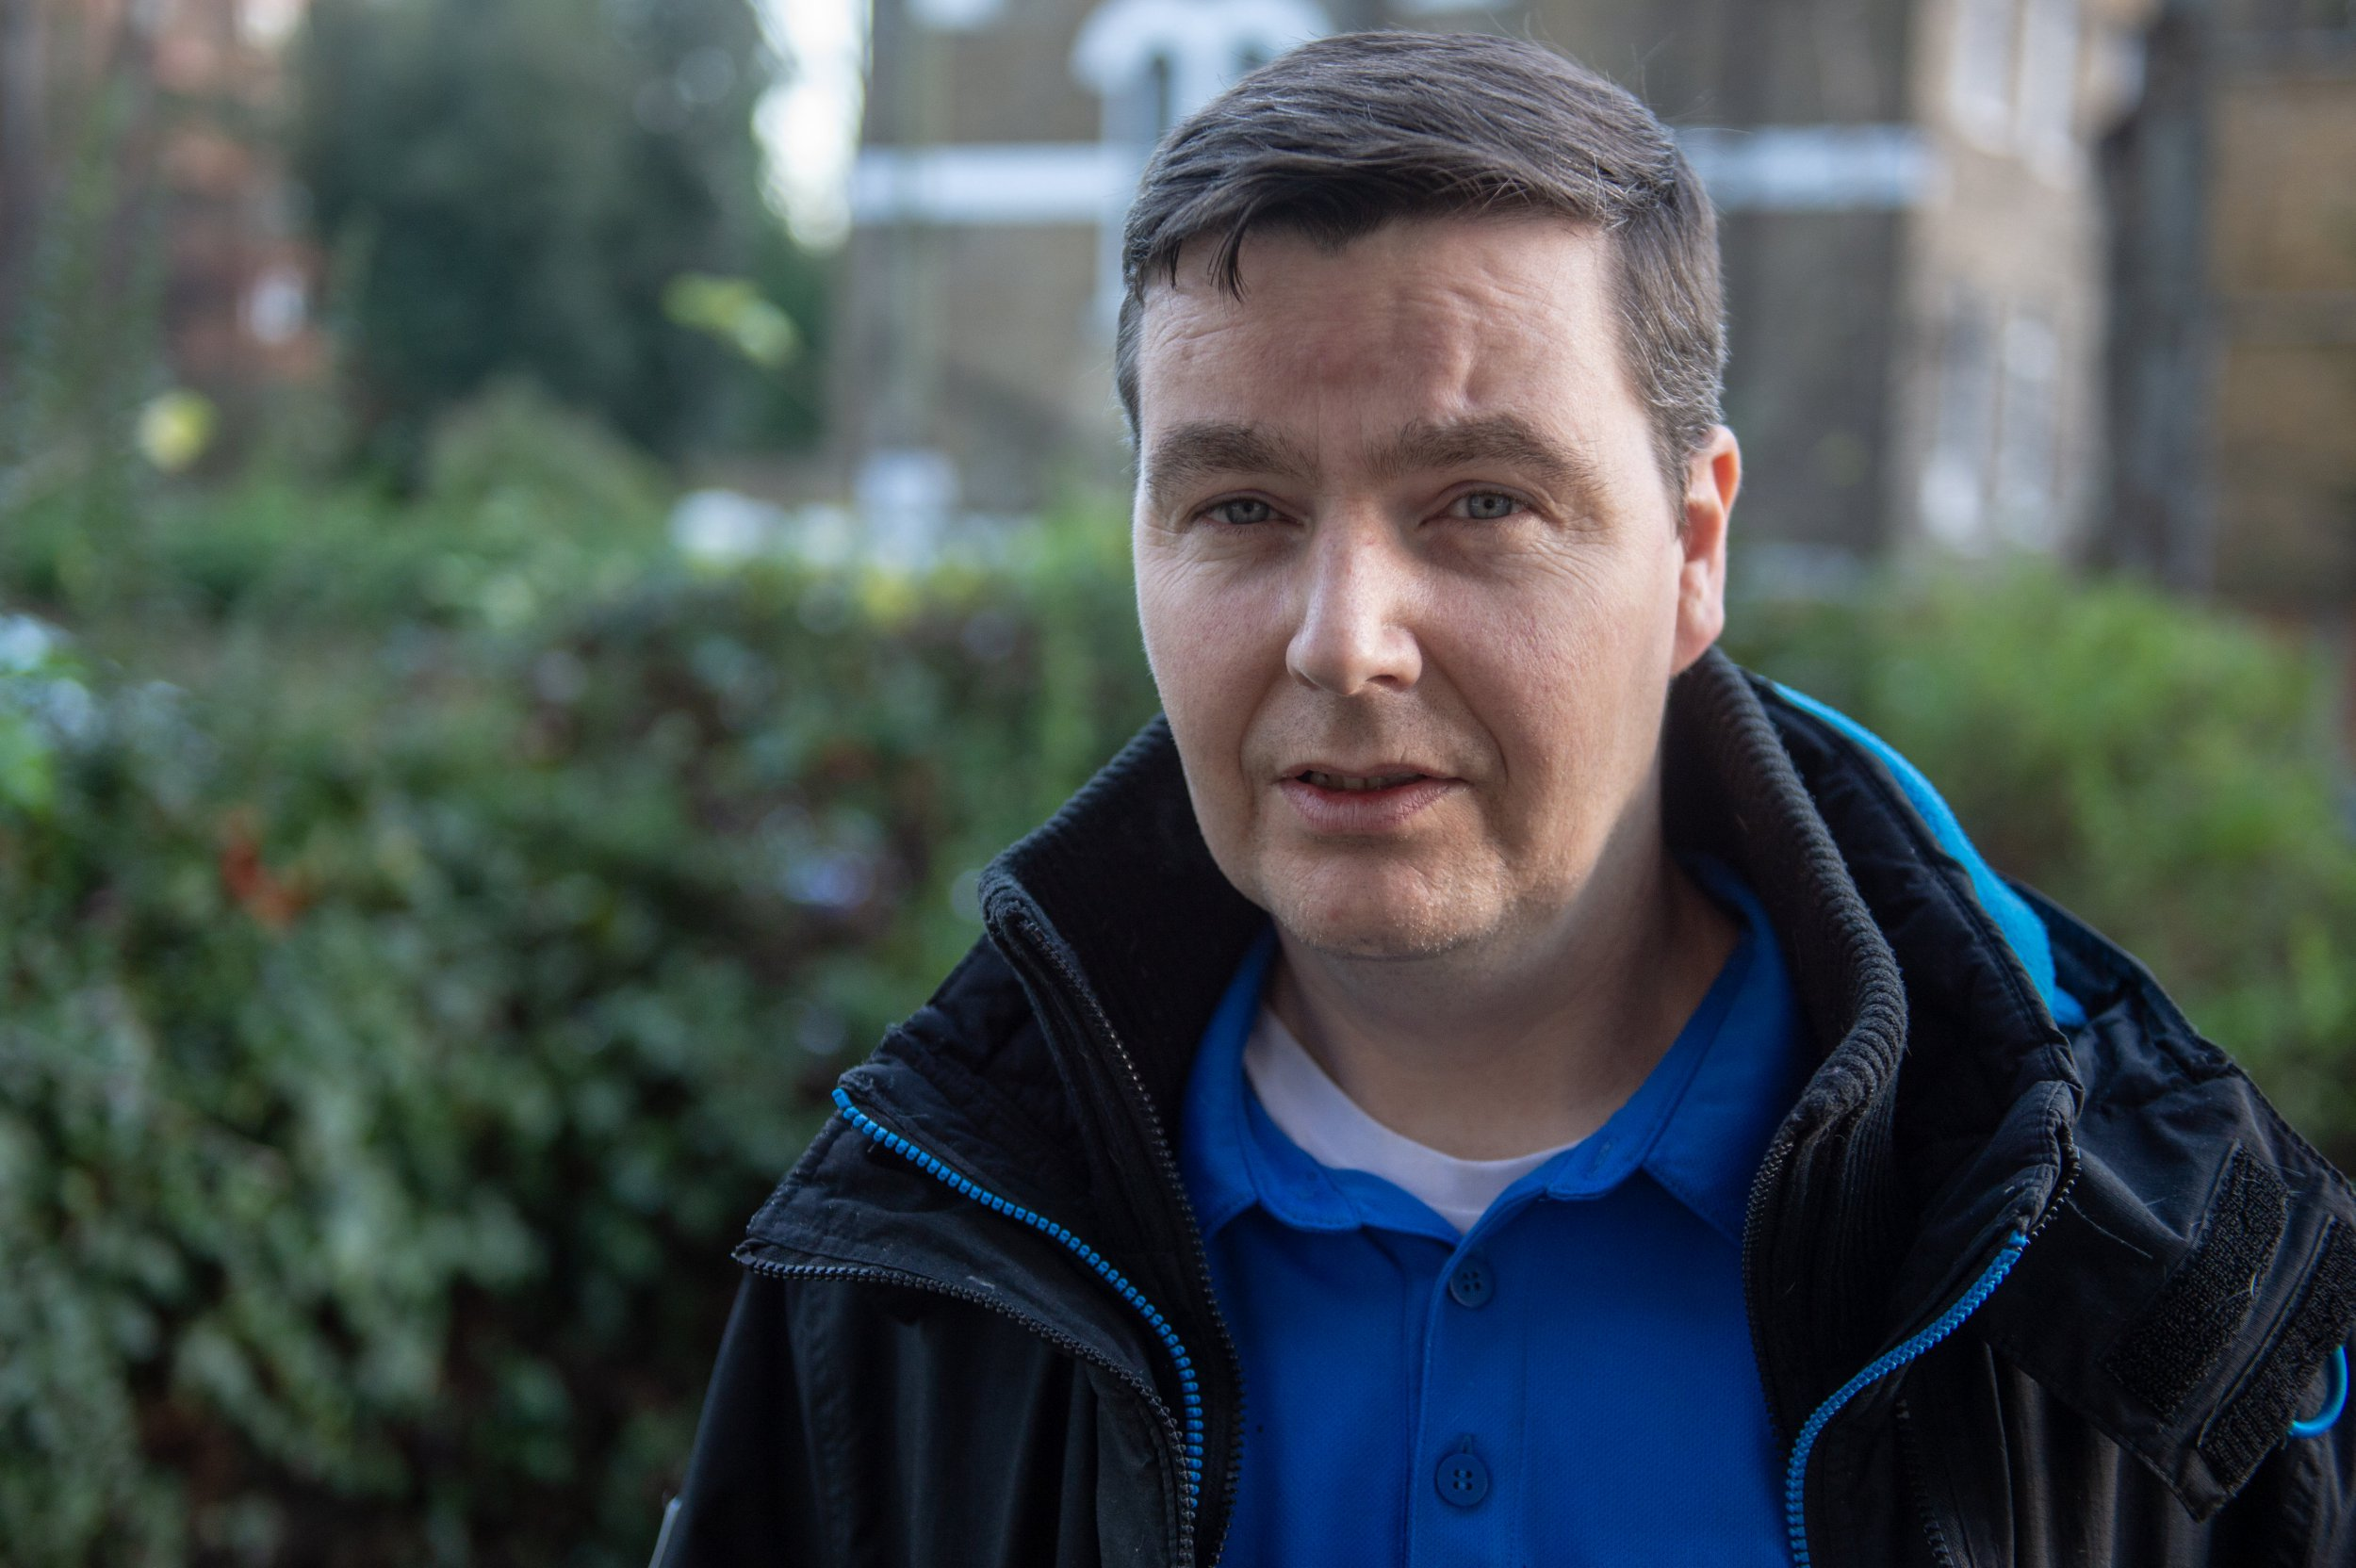 """Carer John McDermott,47, who hasn't had a carers allowance for six months but has been ordered to pay ??2500 in housing benefit Islington, London 17 January 2019See National News story NNtuna.A son who spends 18 hours a day caring for his unwell parents said he is """"screaming for help"""" before the """"backbreaking work"""" sends him to an early grave. John McDermott has been living off a can of tuna a day and said he can't even afford to replace the clothes stained by his incontinent father. For six months, the 47-year-old was trying to make ends meet without receiving his Carers Allowance from the Department of Work and Pensions (DWP) - cutting down his weekly income to ??93.This made it even more challenging to look after his 77-year-old parents - Patrick who suffers from severe incontinence and dementia and Katherine who was diagnosed with schizophrenia 40 years ago."""